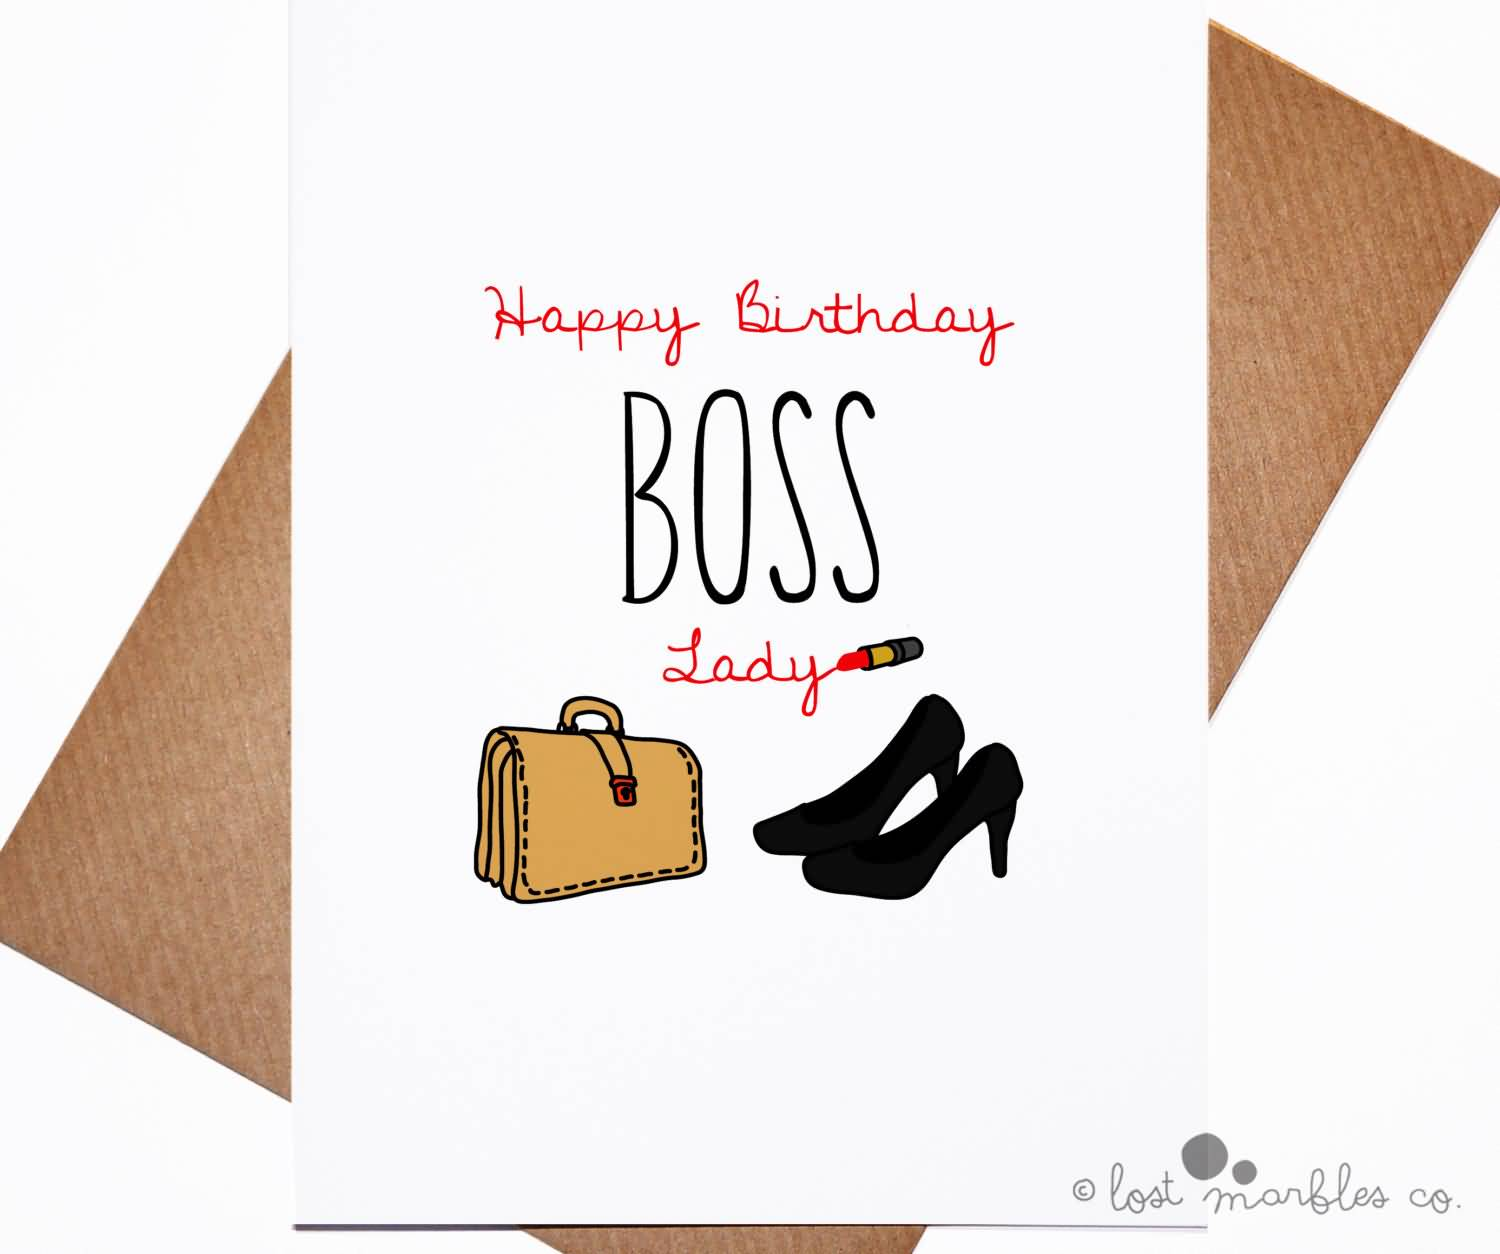 45 Fabulous Happy Birthday Wishes For Boss Image Meme Wallpaper